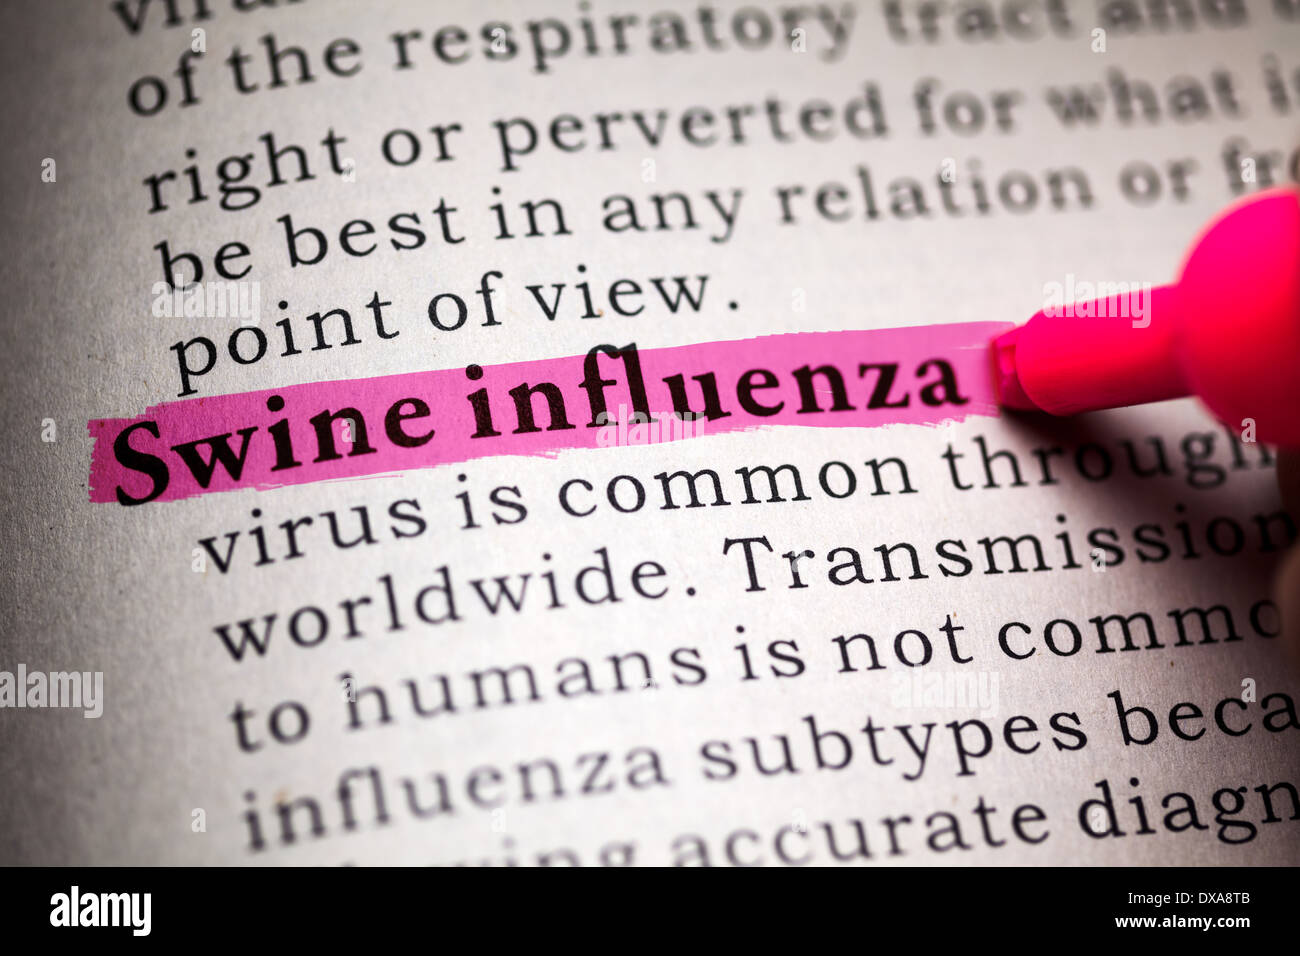 Fake Dictionary, definition of the word Swine influenza. - Stock Image